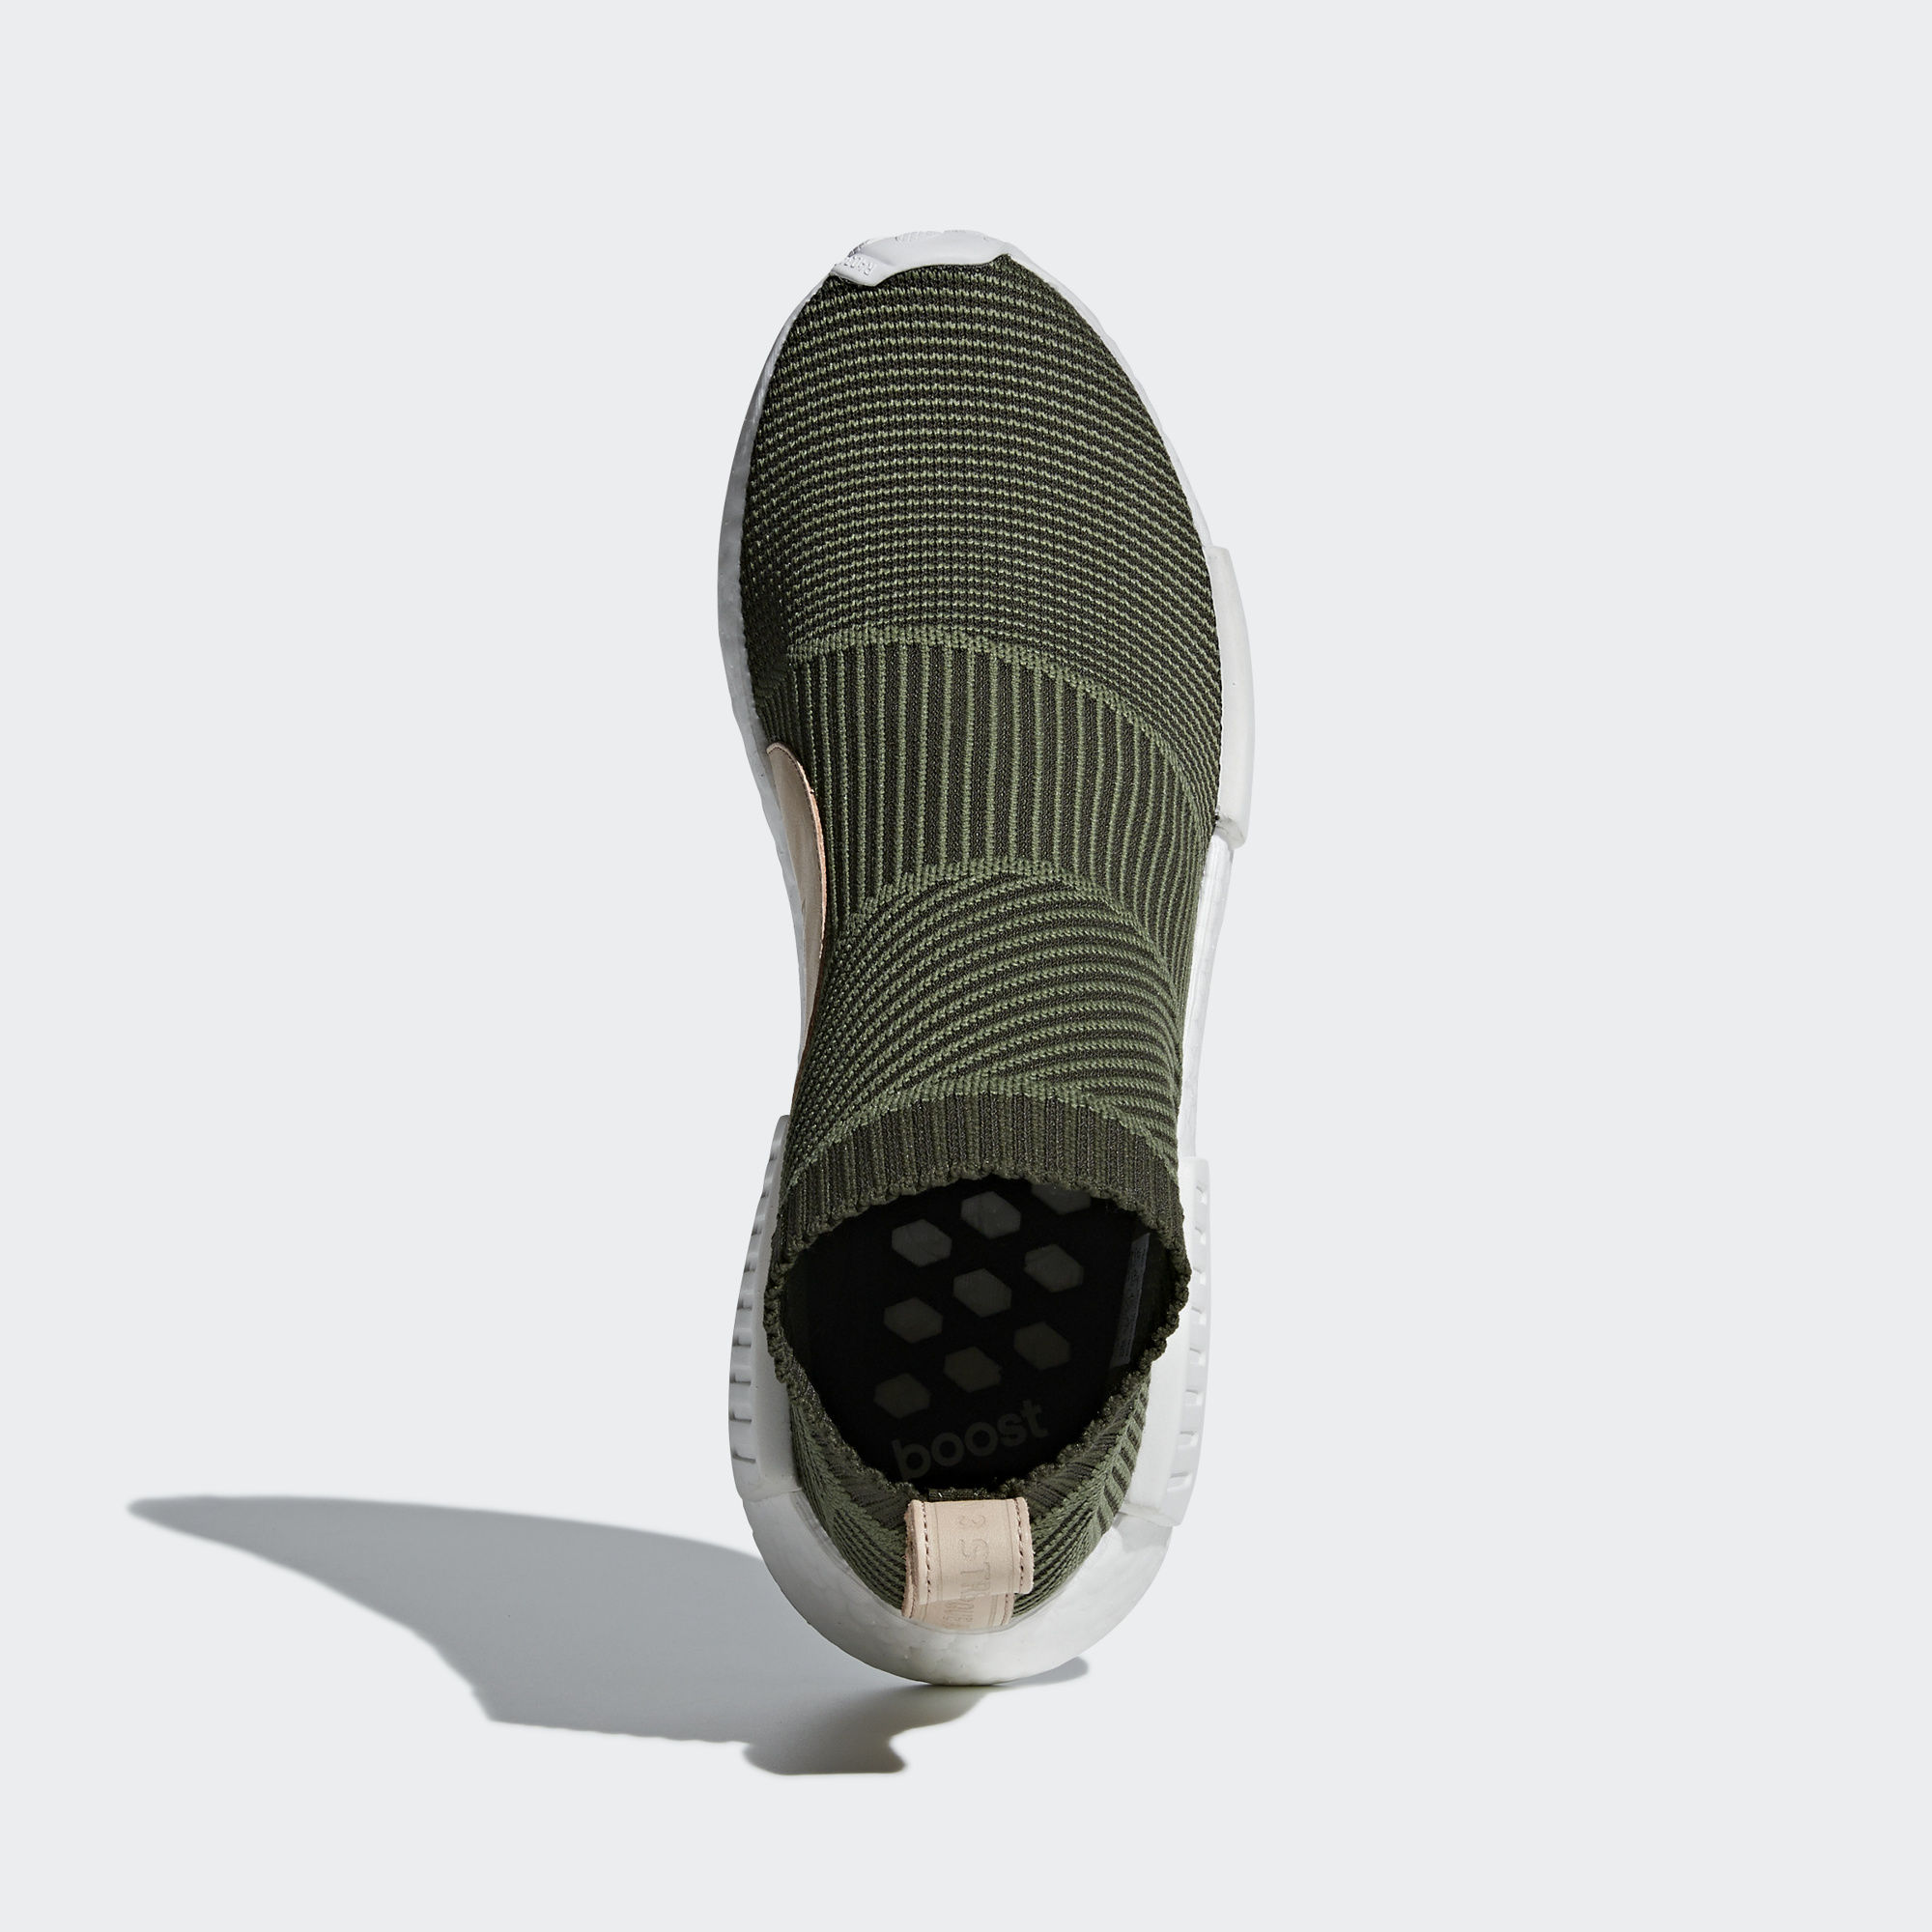 Adidas NMD_CS1 Night Cargo / Base Green / Ftwr White (B37638)